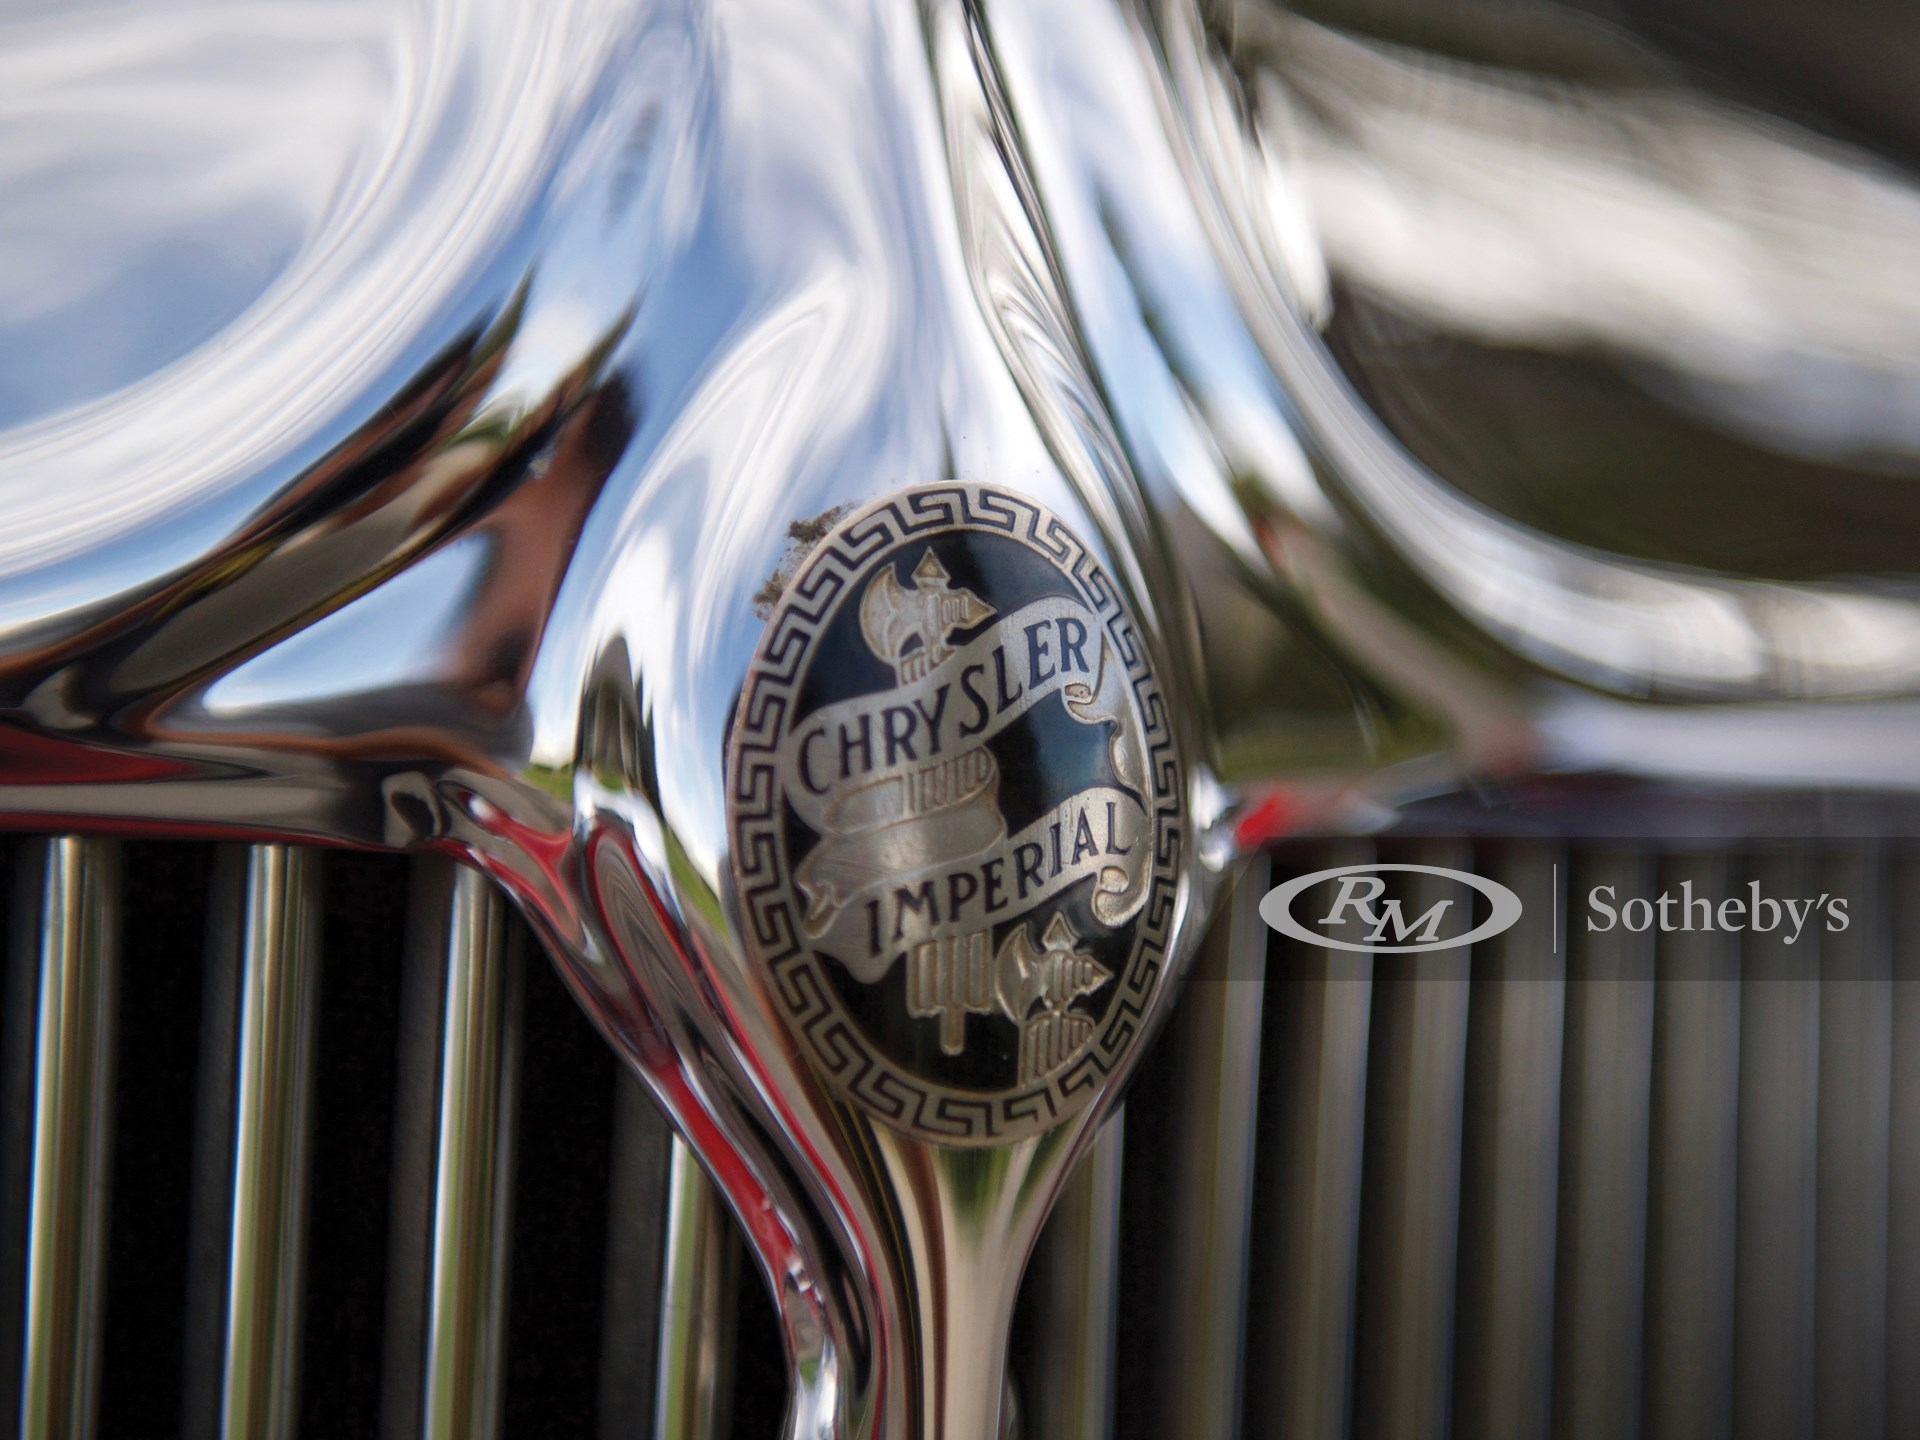 1933 Chrysler CL Imperial Dual-Windshield Phaeton by LeBaron -